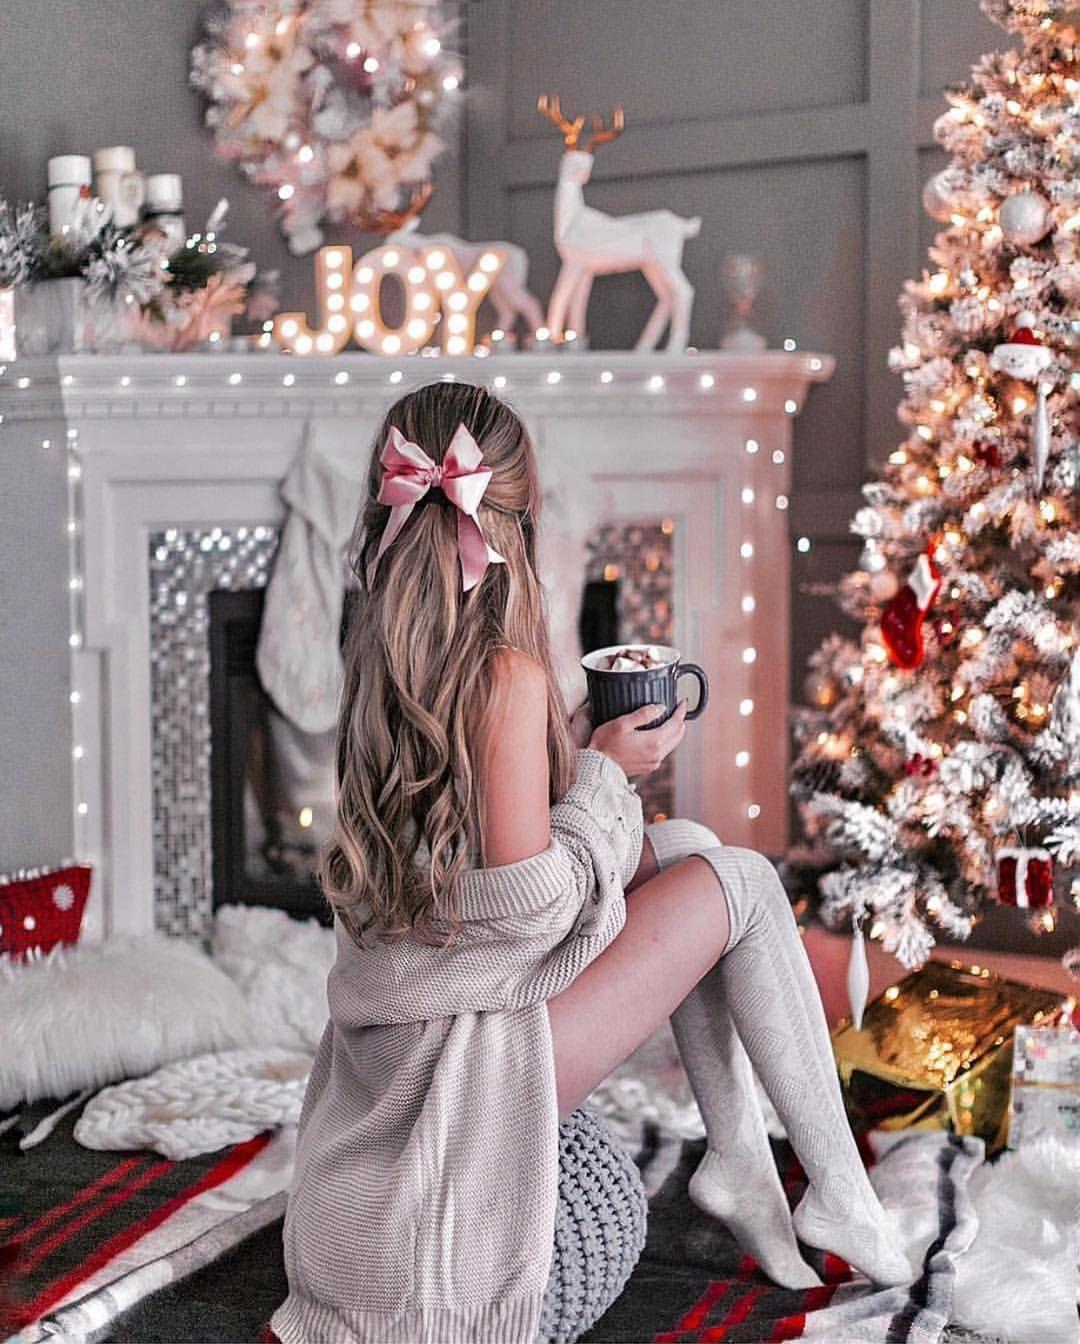 Beautiful girl in stocking and ribbon in long hair drinks her holiday coffee